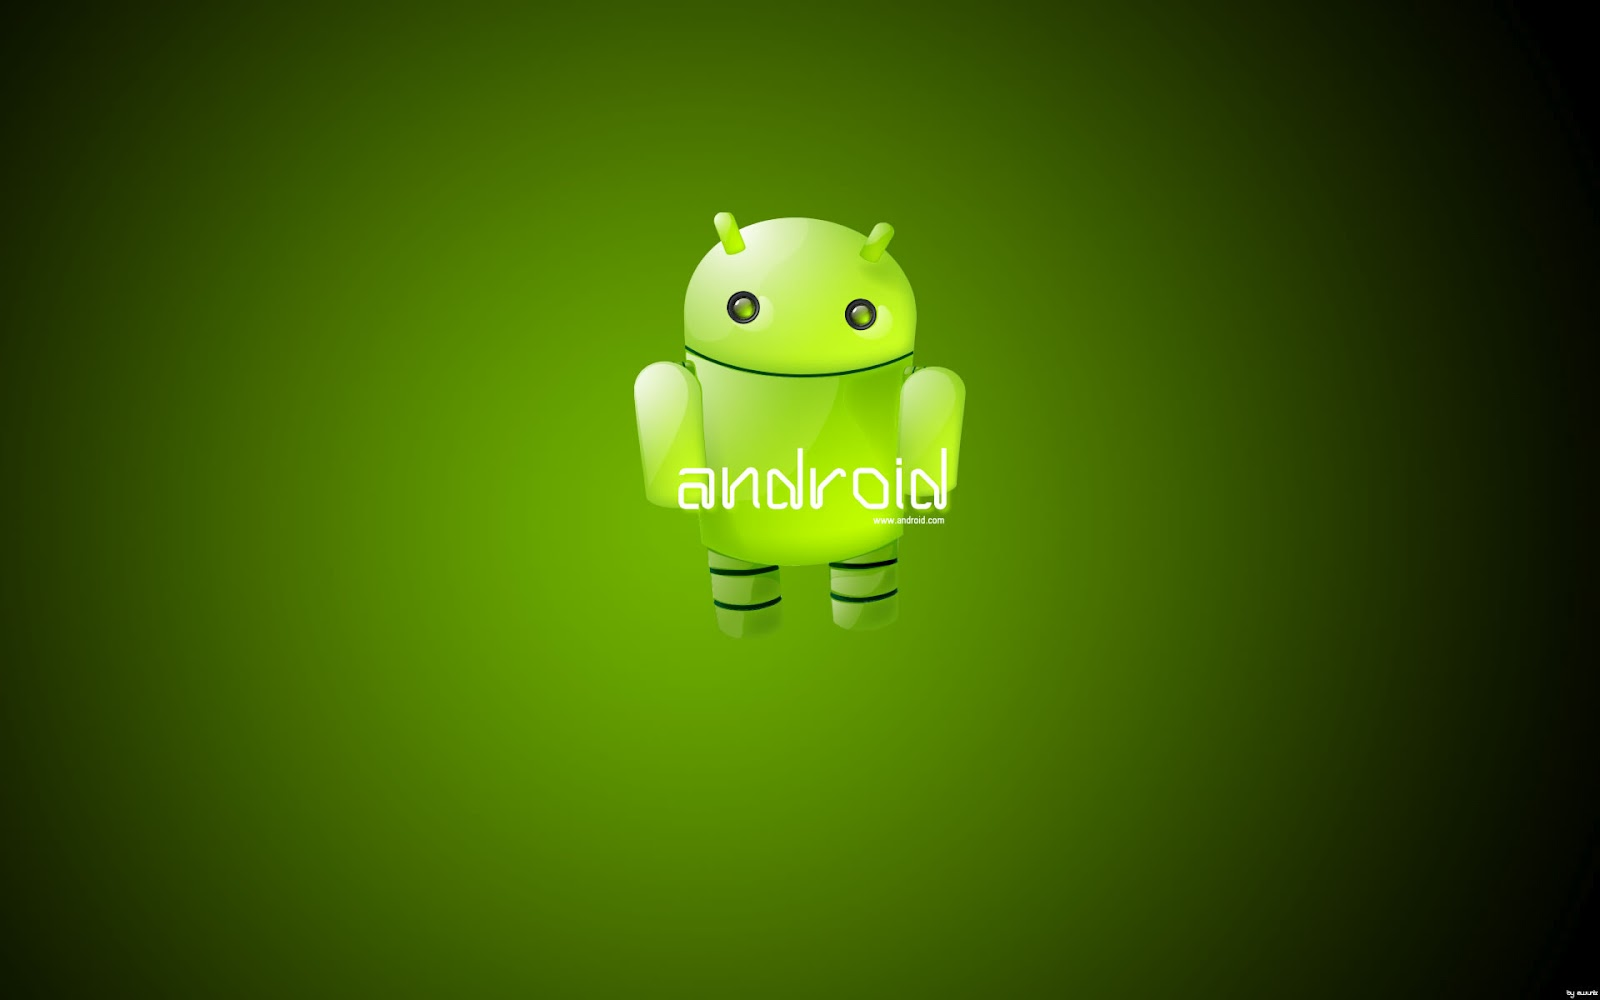 android desktop wallpapers android wallpapers for pc free